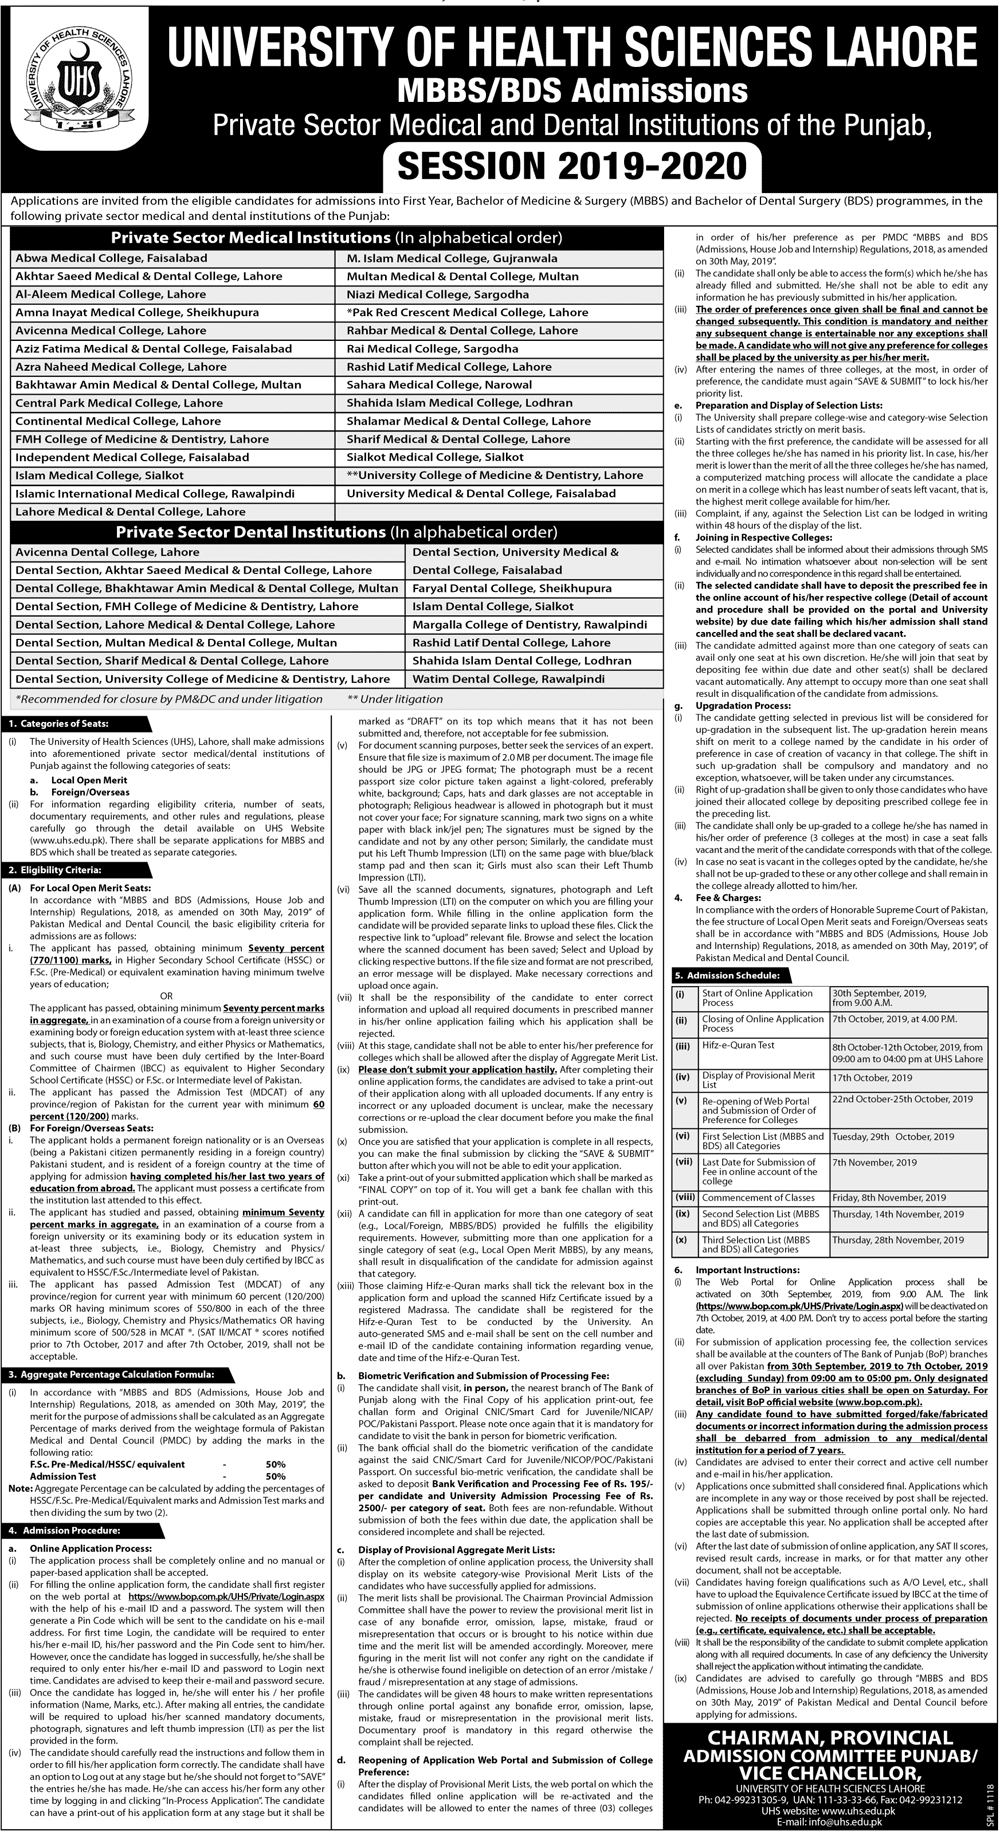 UHS Lahore Admission 2019 In Private Medical & Dental Colleges